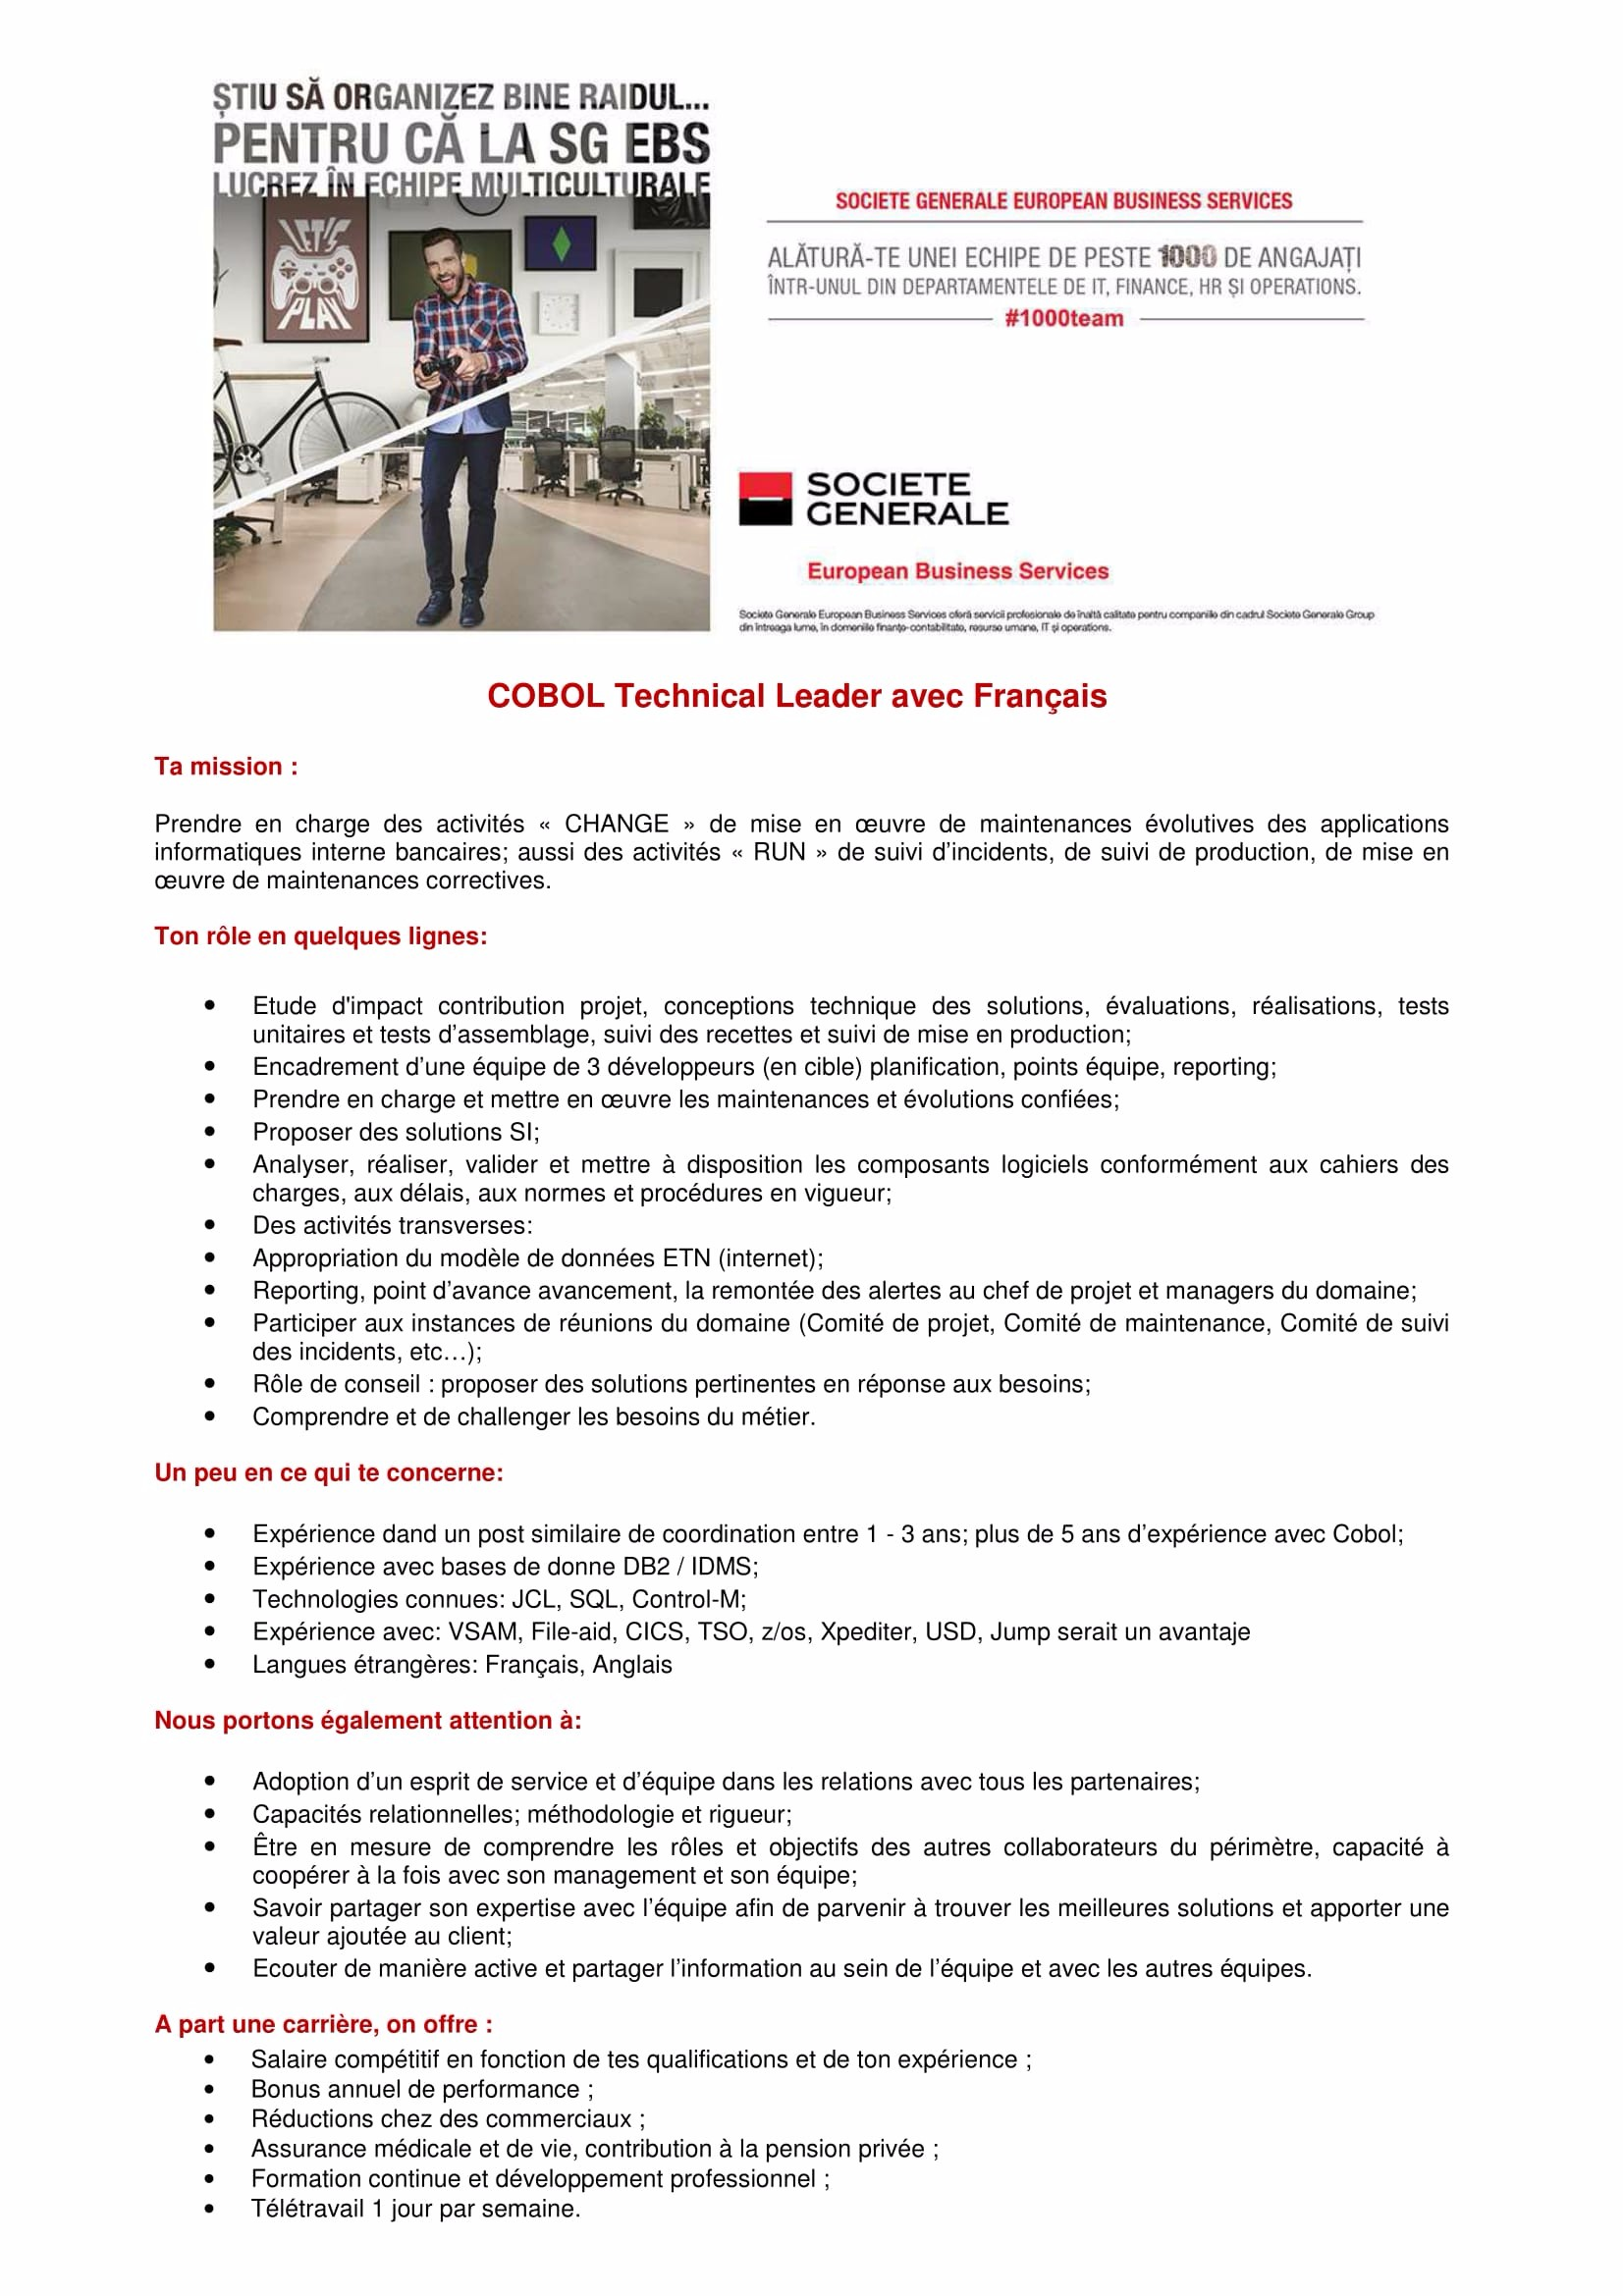 Technical Leader avec Français_bj version-1